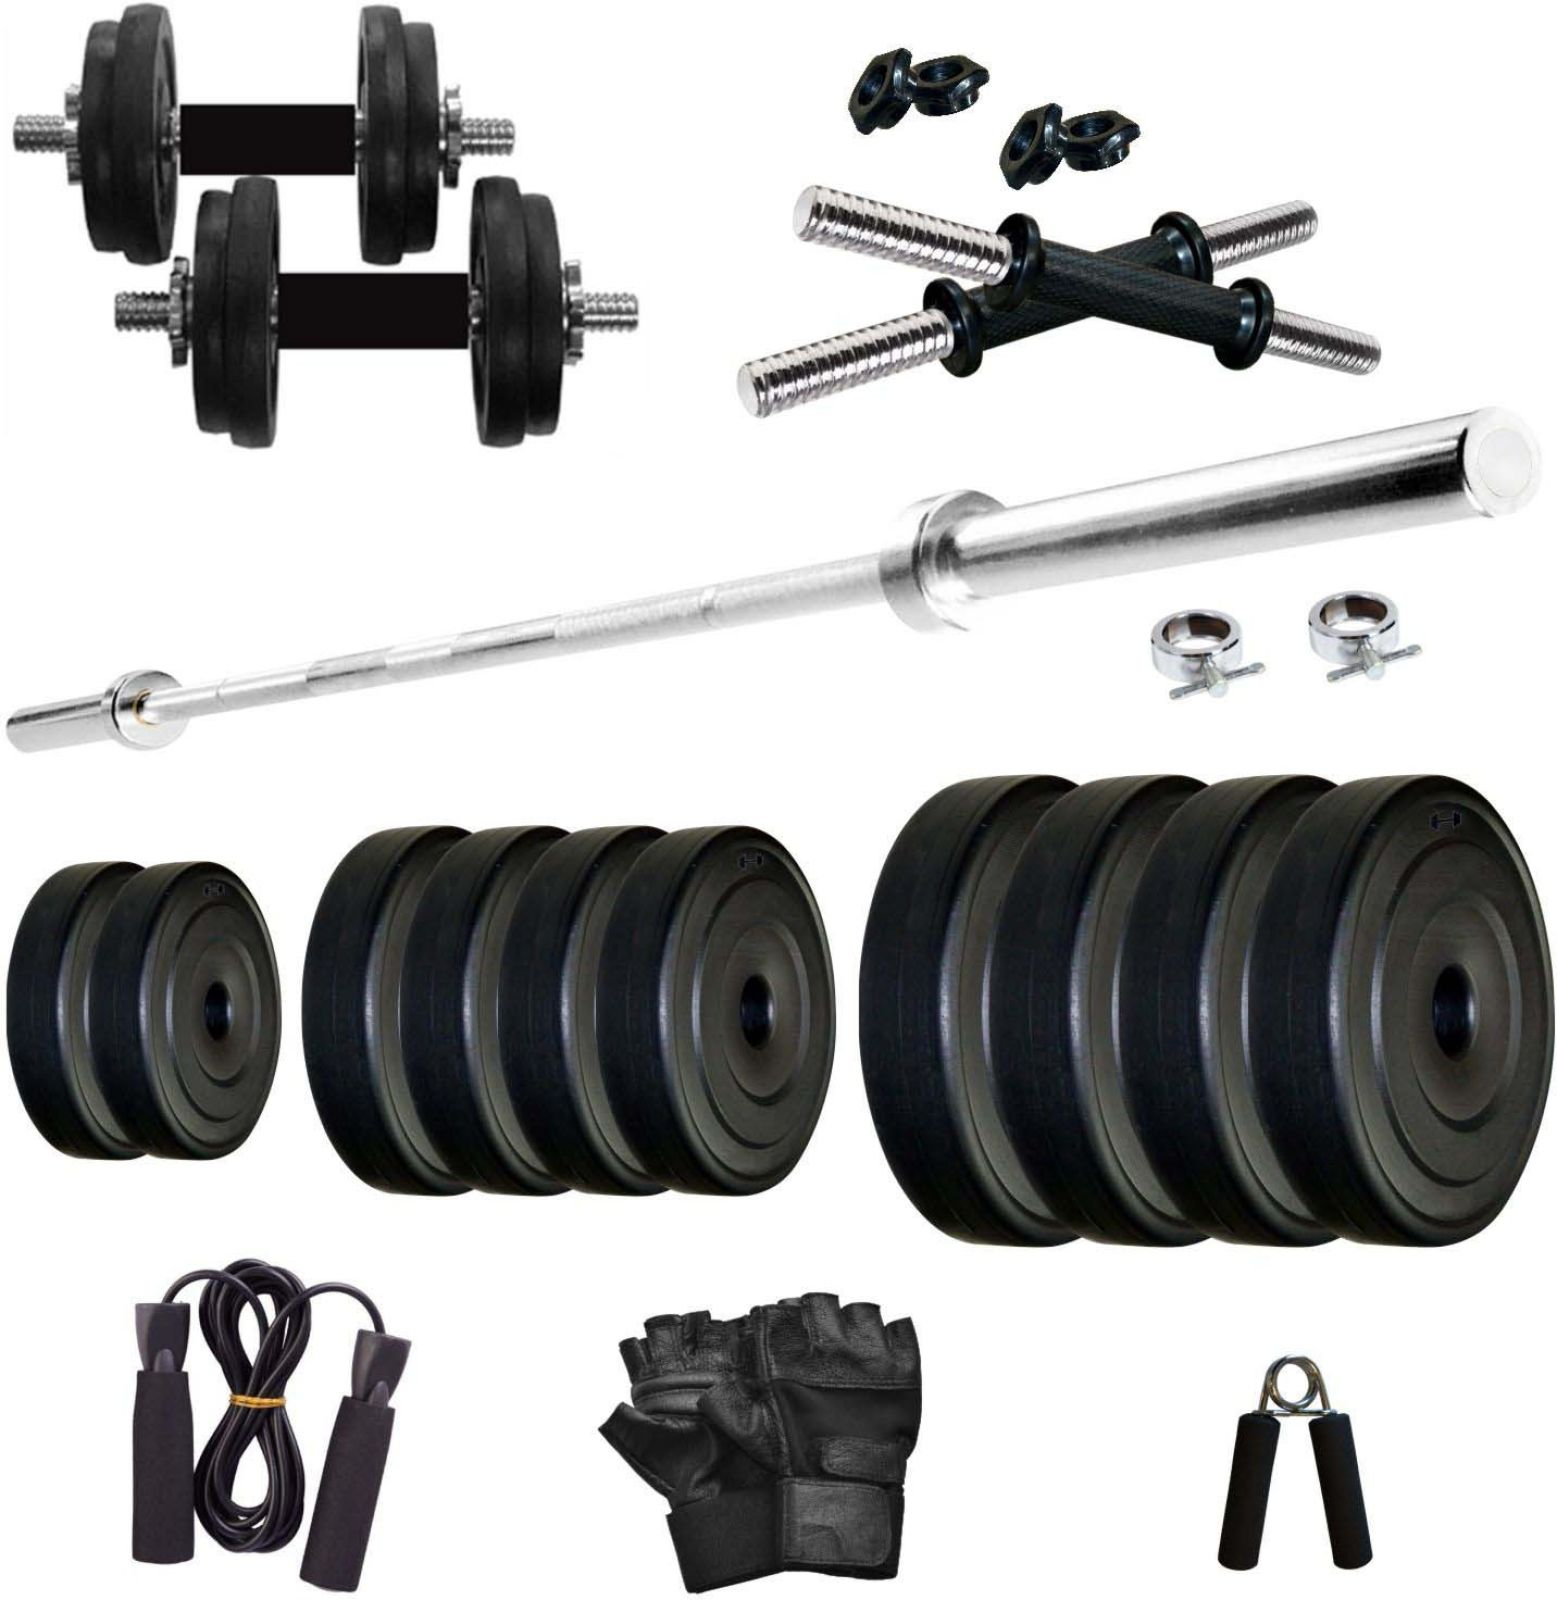 KRX PVC 20 KG COMBO 9 WB Home Gym Kit